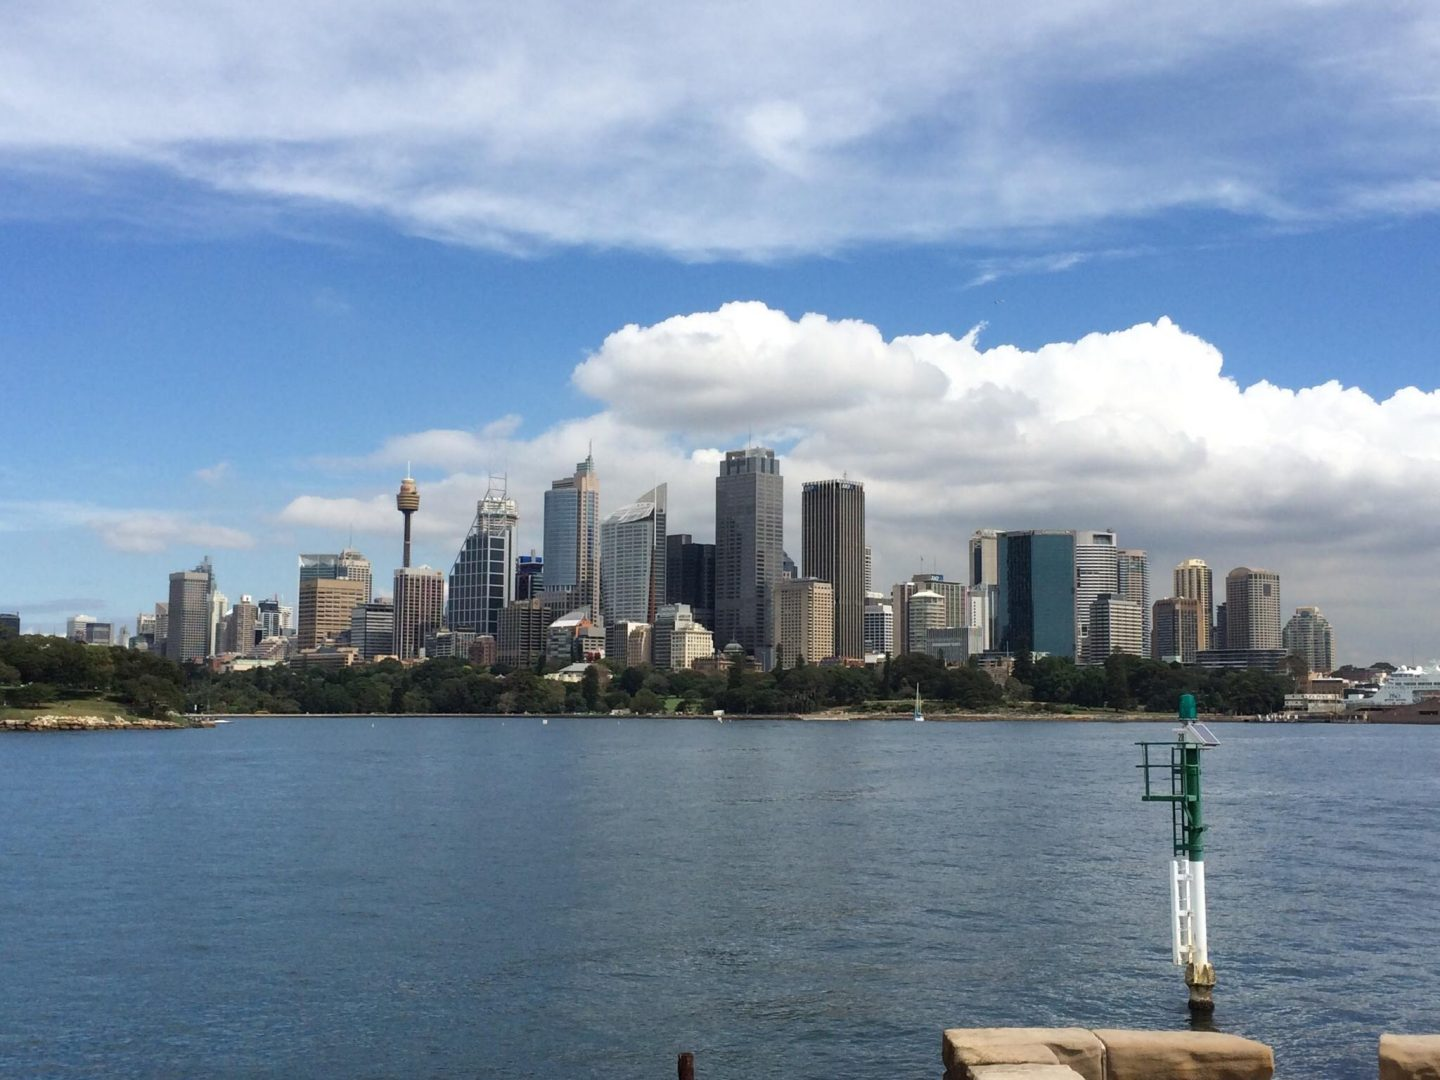 Views of Sydney's skyline from Fort Denison